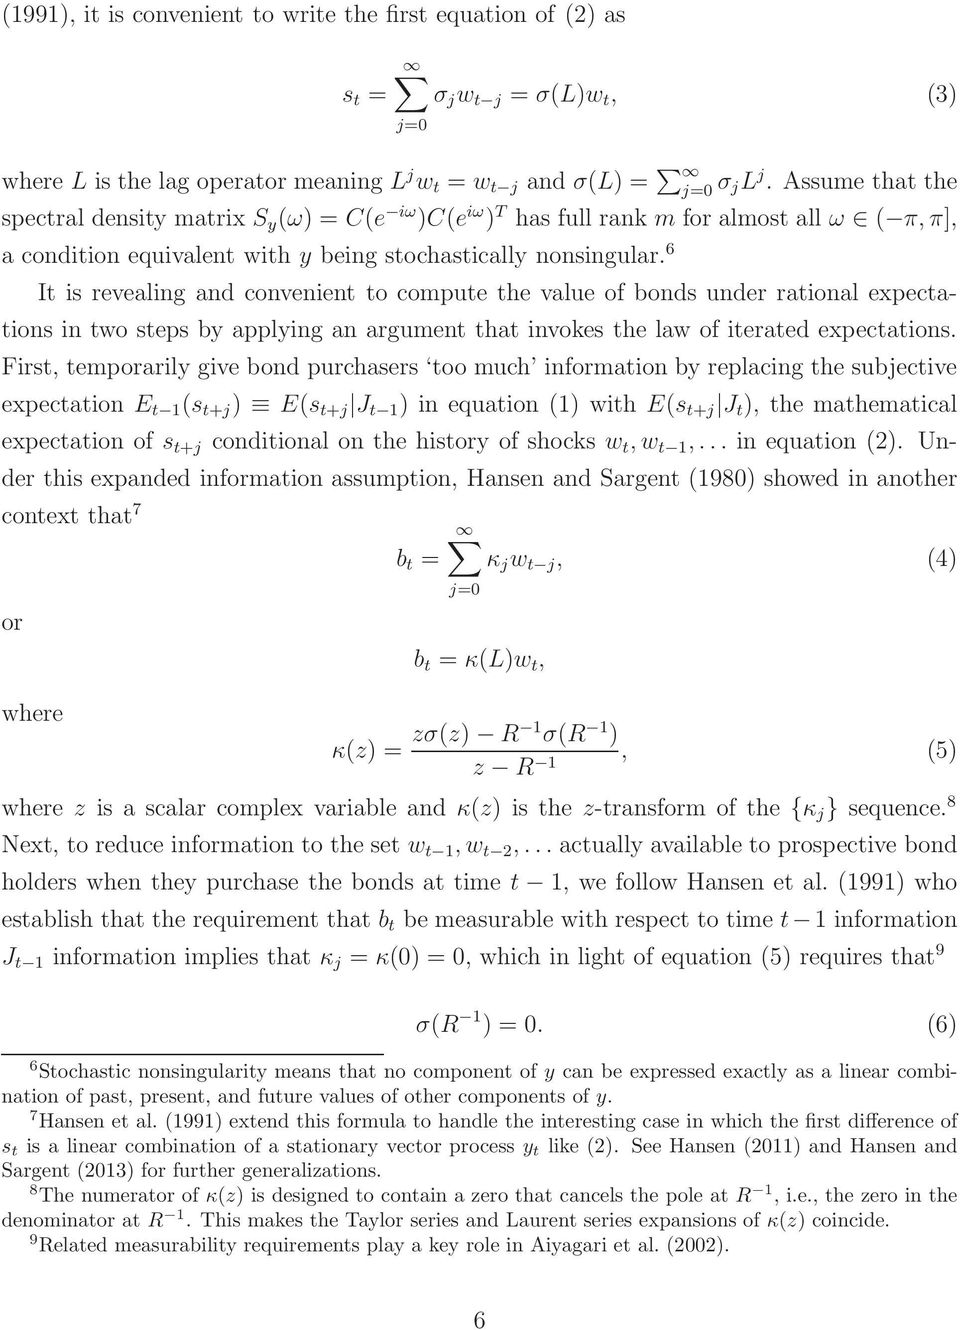 6 It is revealing and convenient to compute the value of bonds under rational expectations in two steps by applying an argument that invokes the law of iterated expectations.